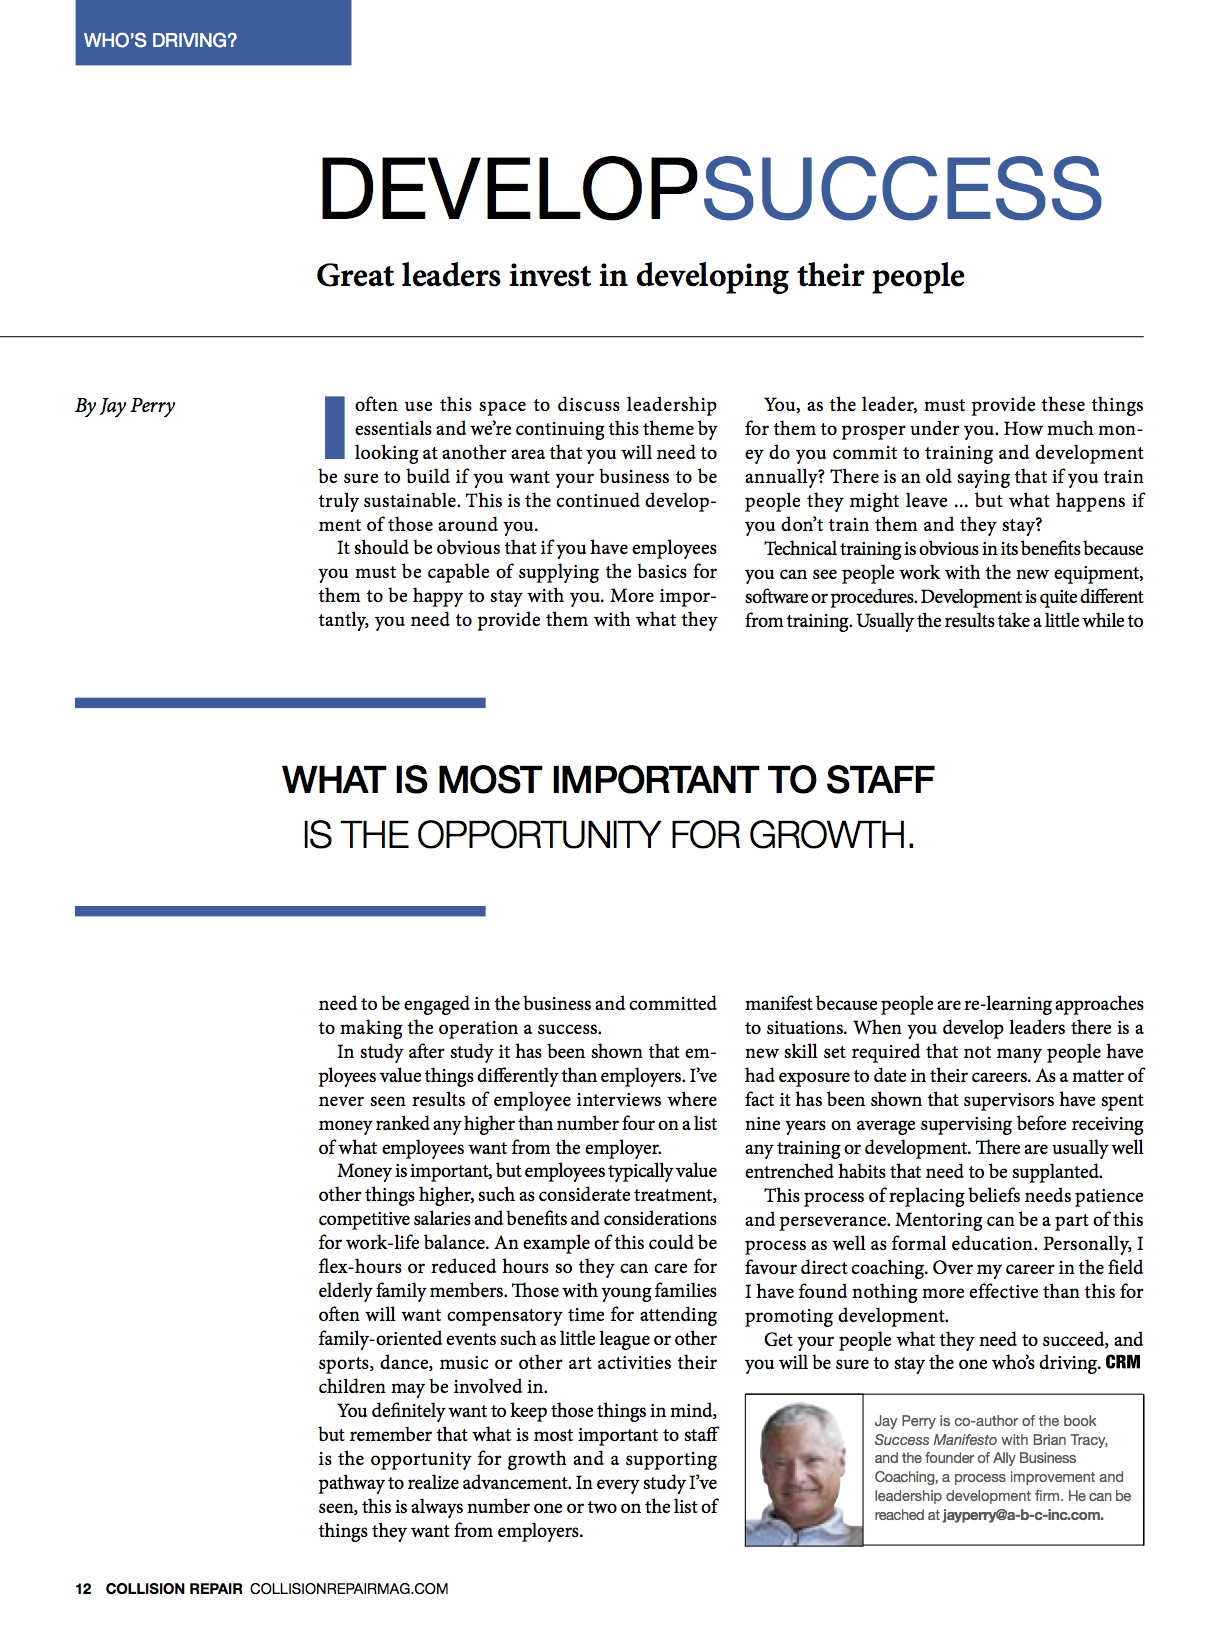 Another Leadership Article Published